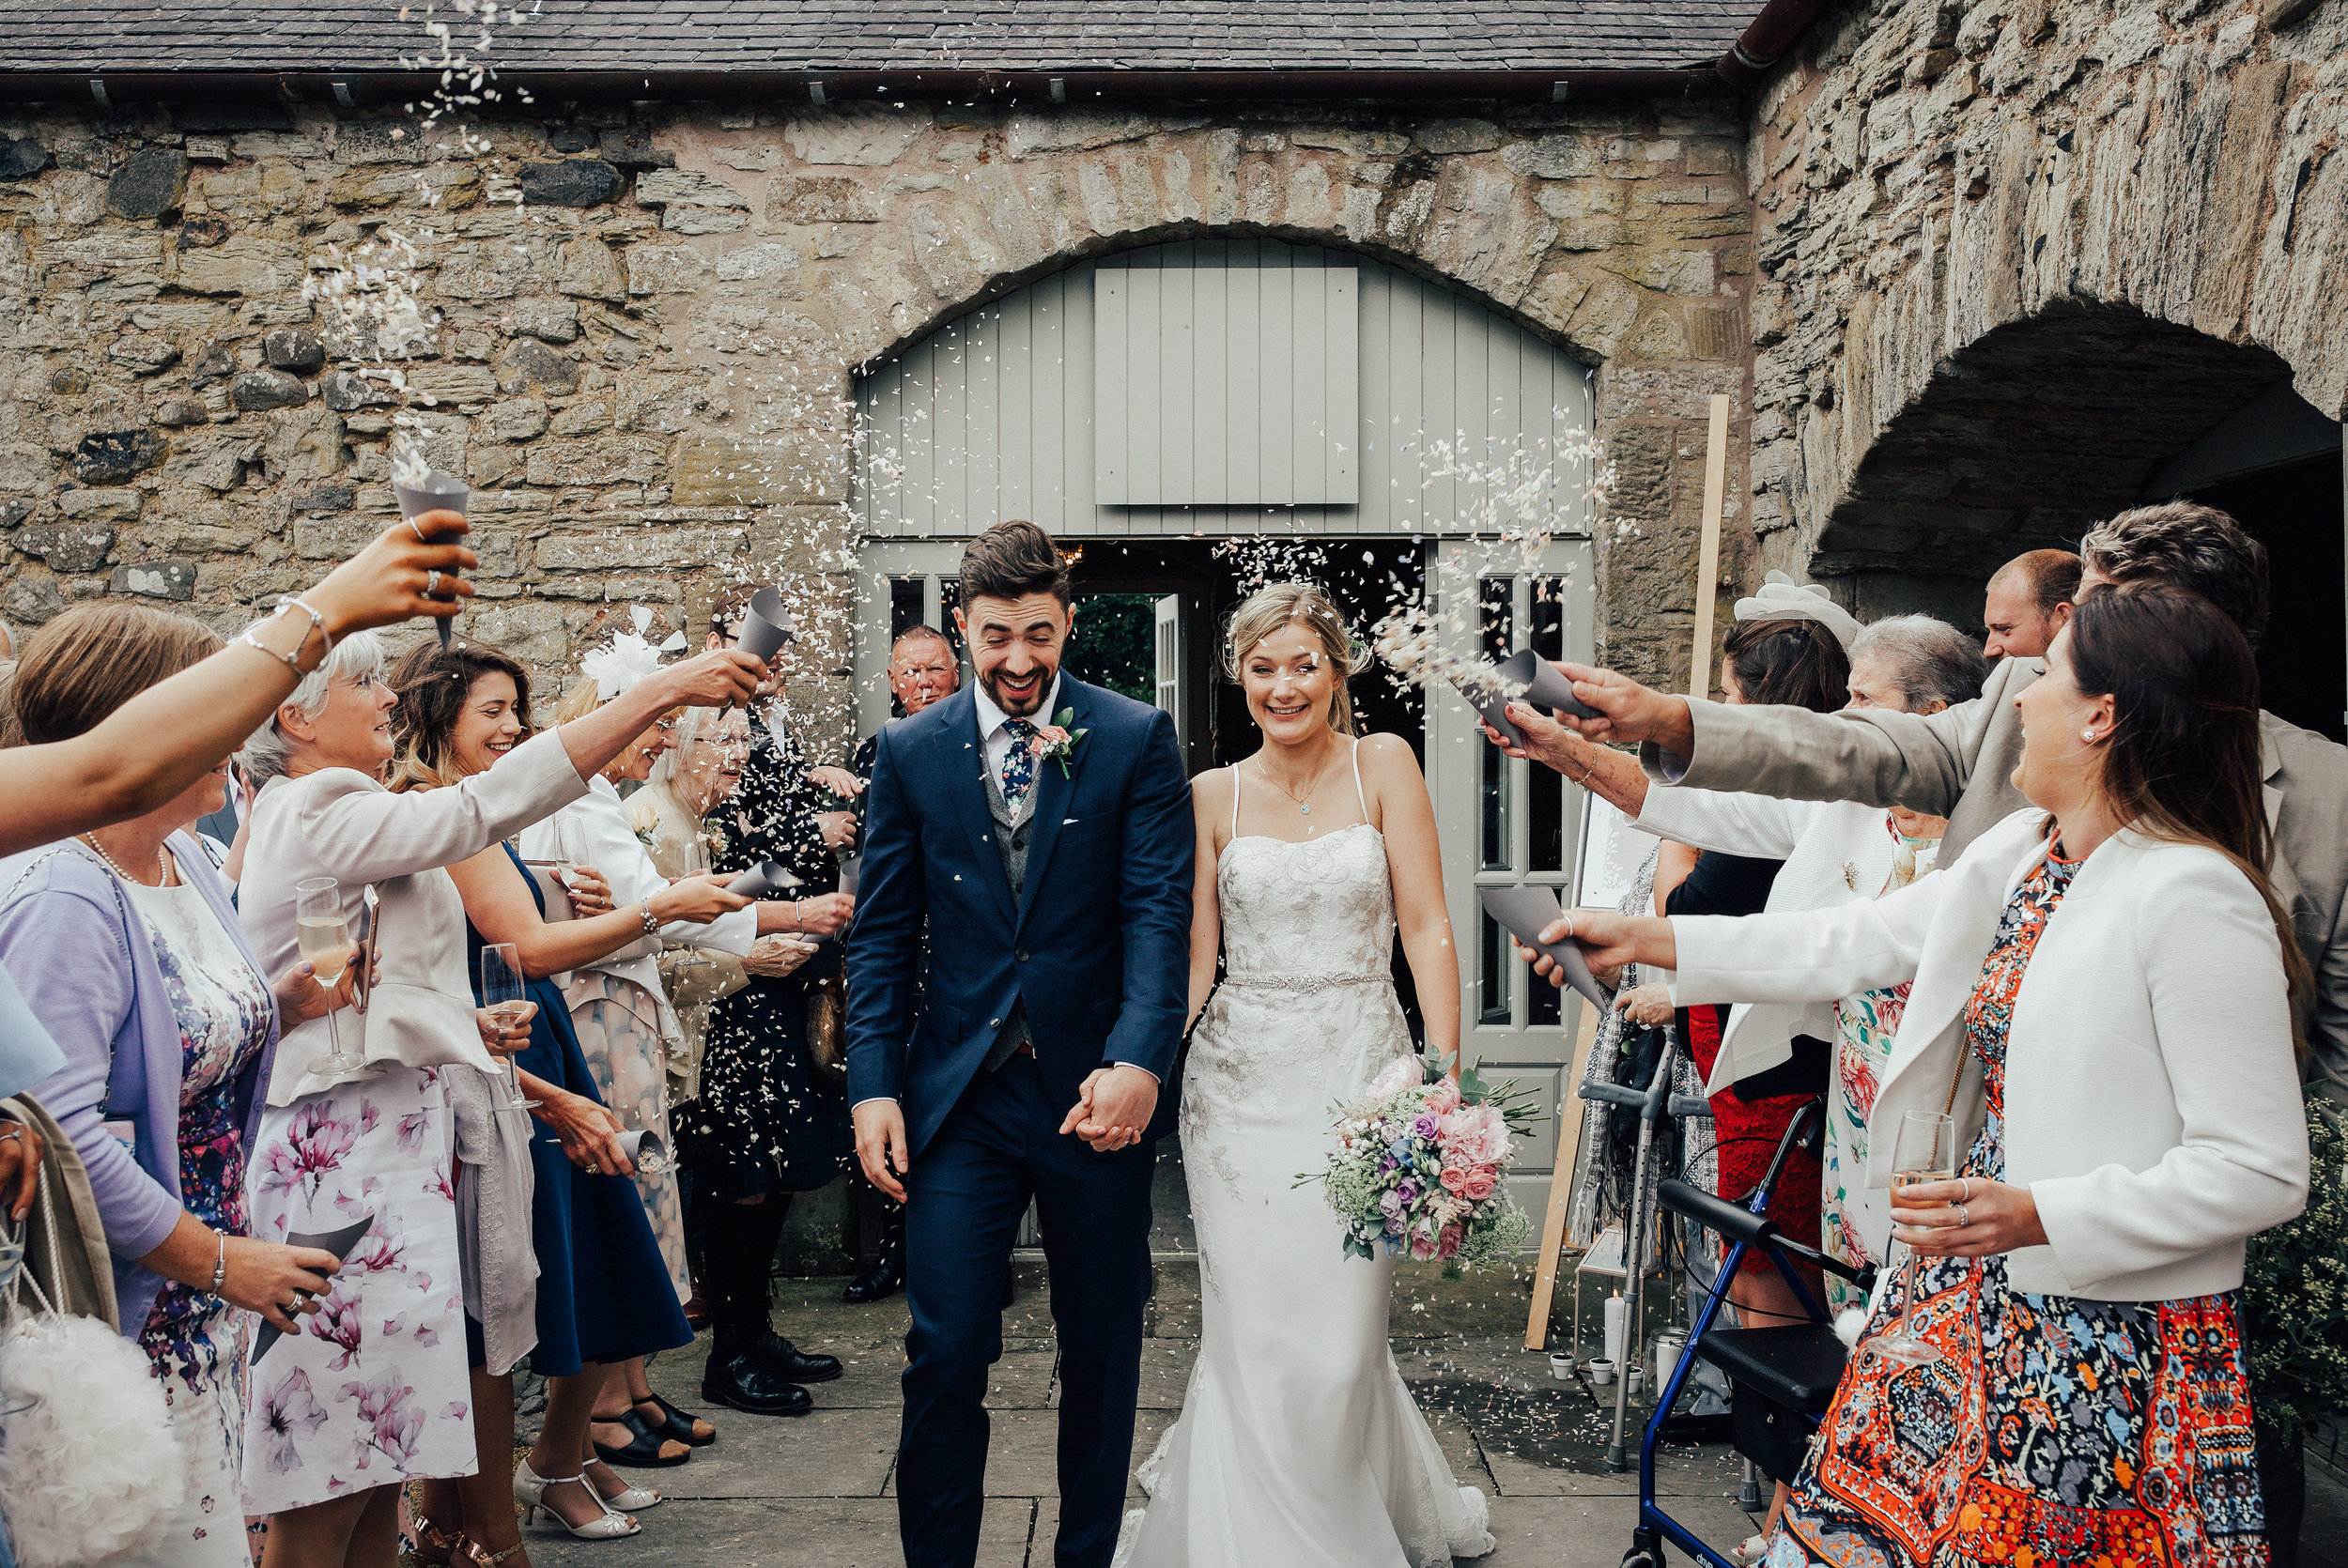 PJ_PHILLIPS_PHOTOGRAPHY_EDINBURGH_WEDDERBURN_BARNS_WEDDING_EDINBURGH_WEDDING_PHOTOGRAPHER_88.jpg